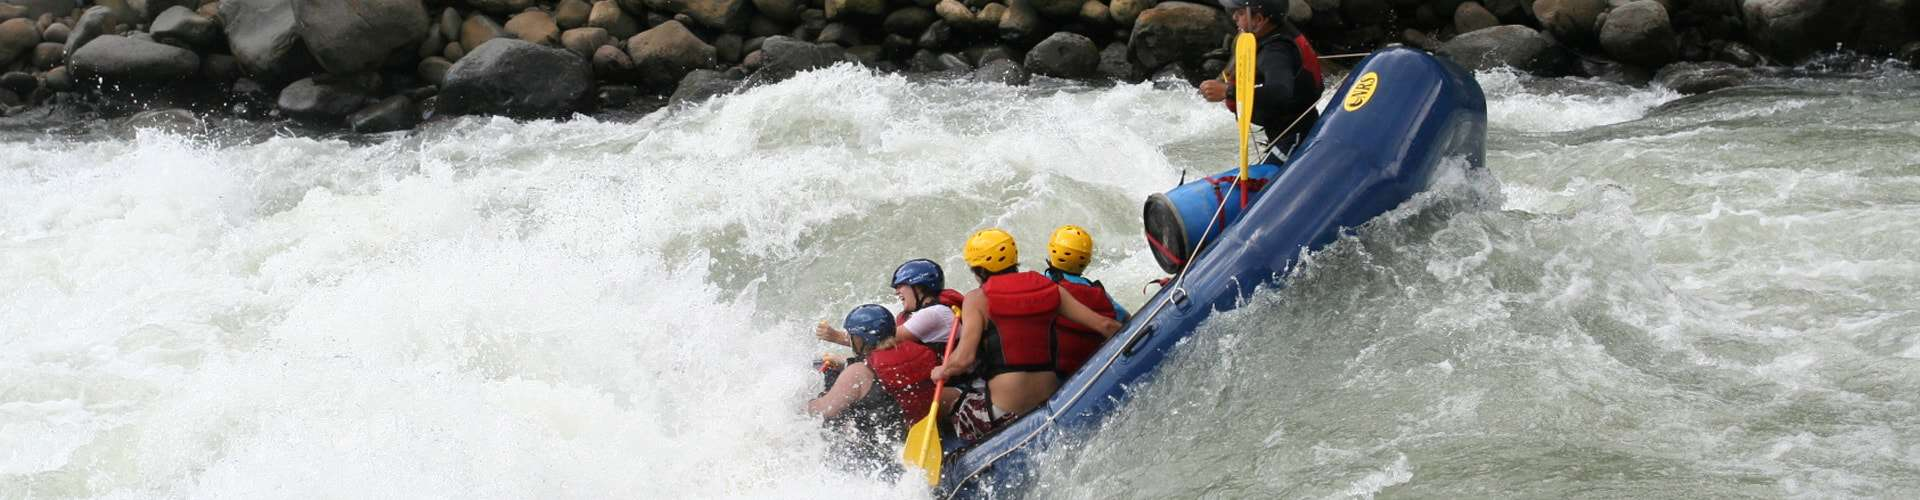 rafting krabi tours